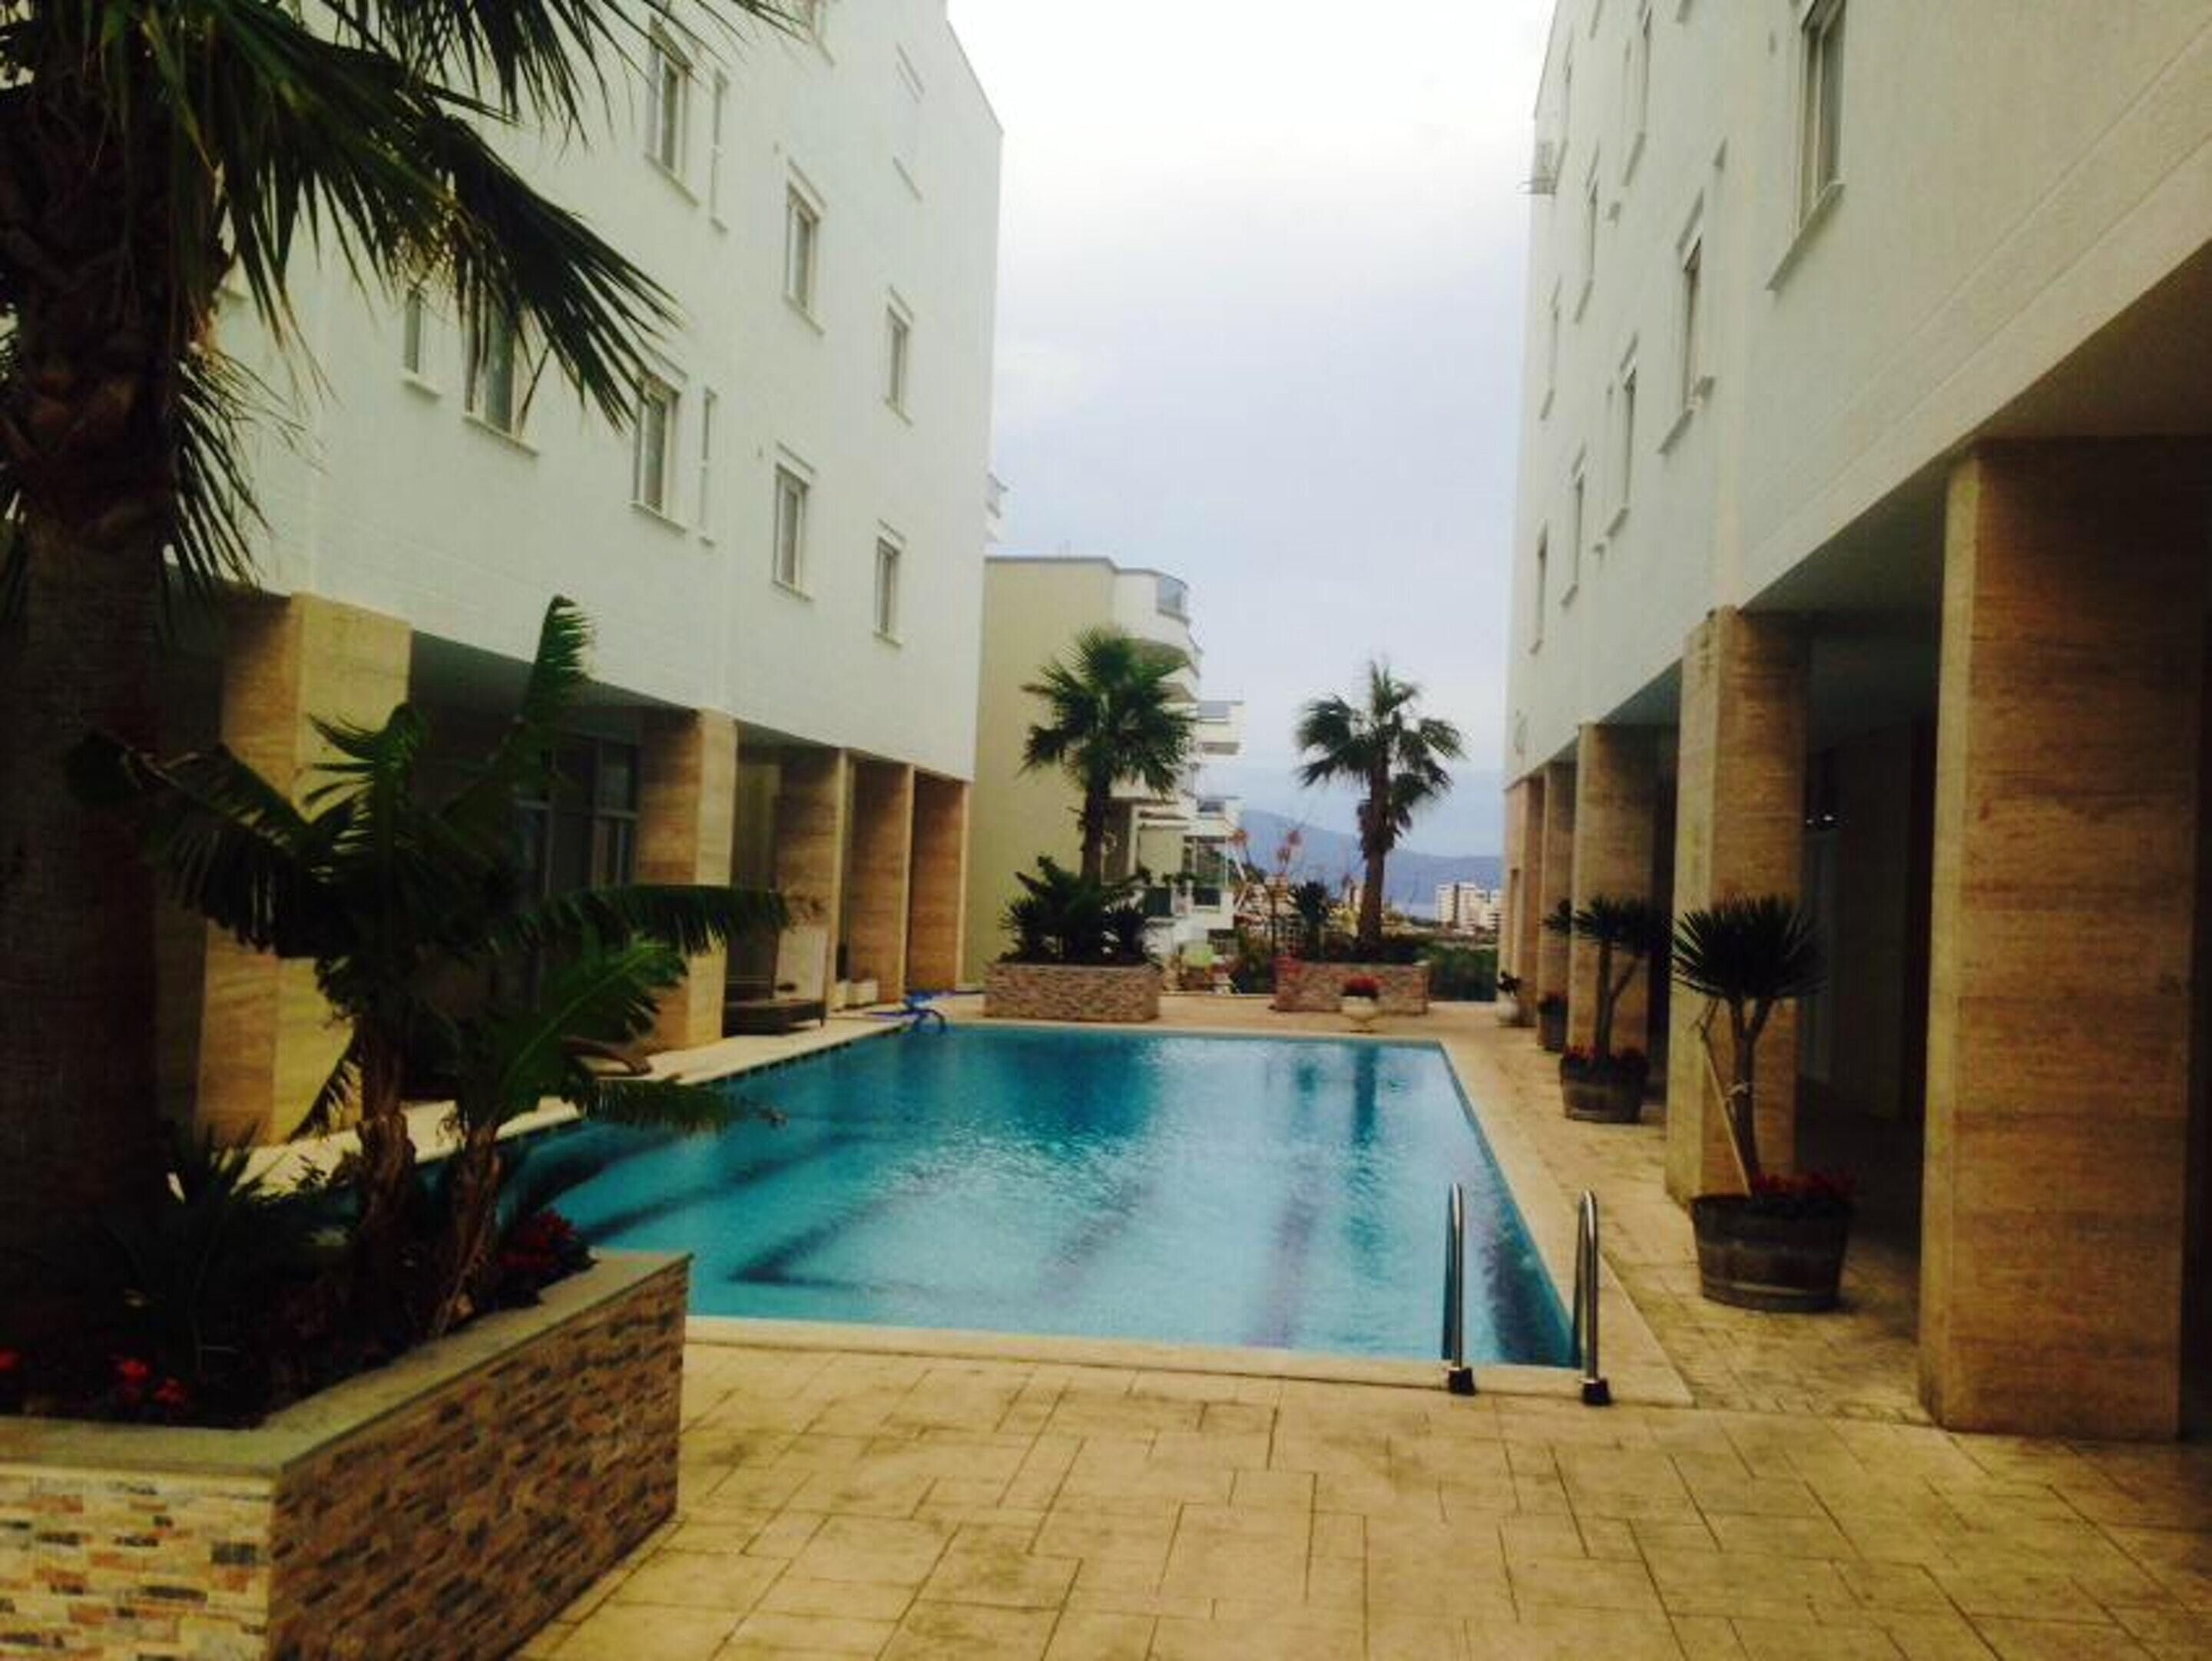 Apartment With One Bedroom In VlorË,  With Wonderful Sea View,  Pool Access,  Balcony - 300 M From The